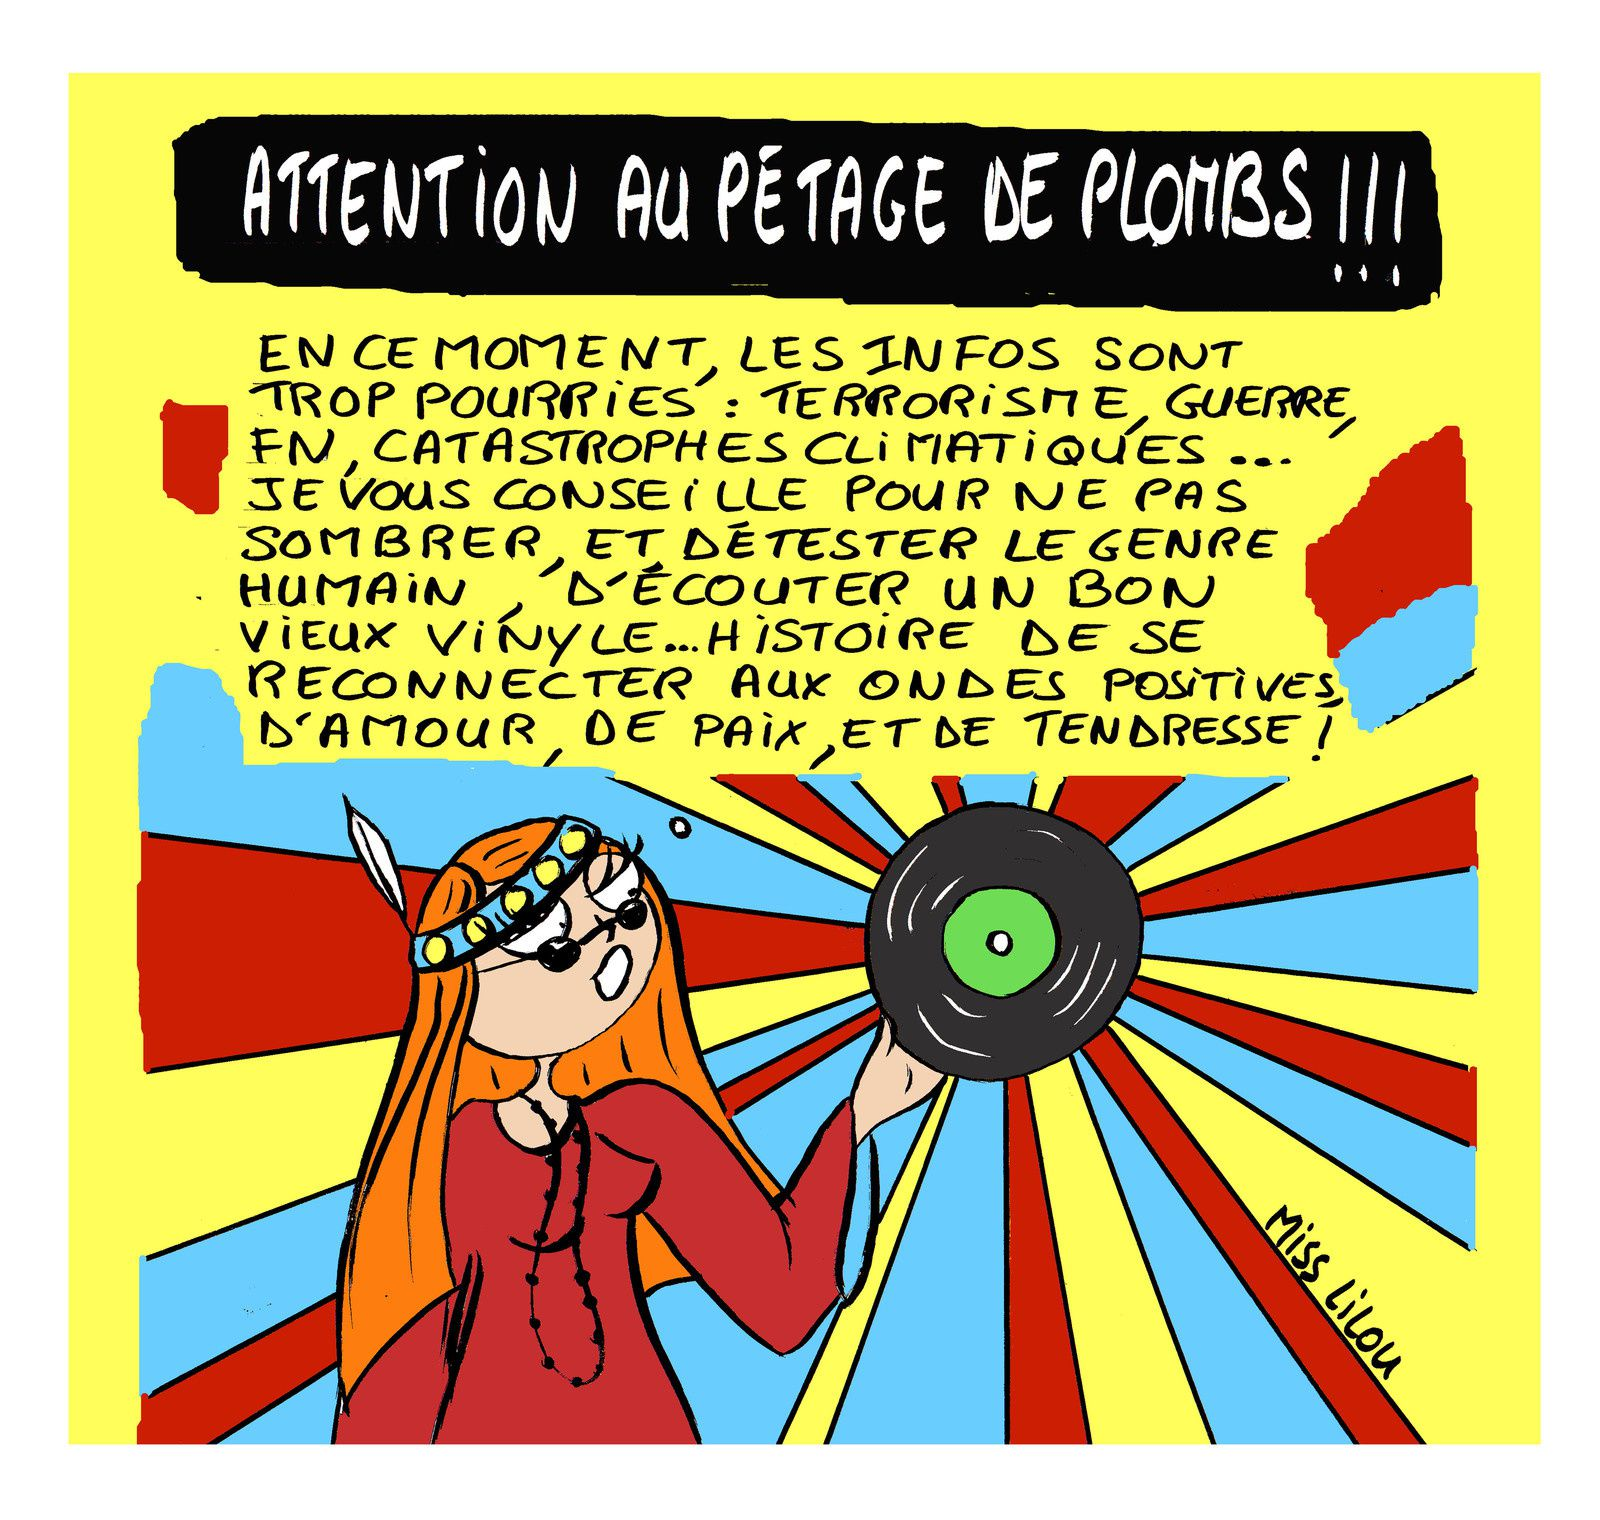 ATTENTION AU PÉTAGE DE PLOMBS !!!